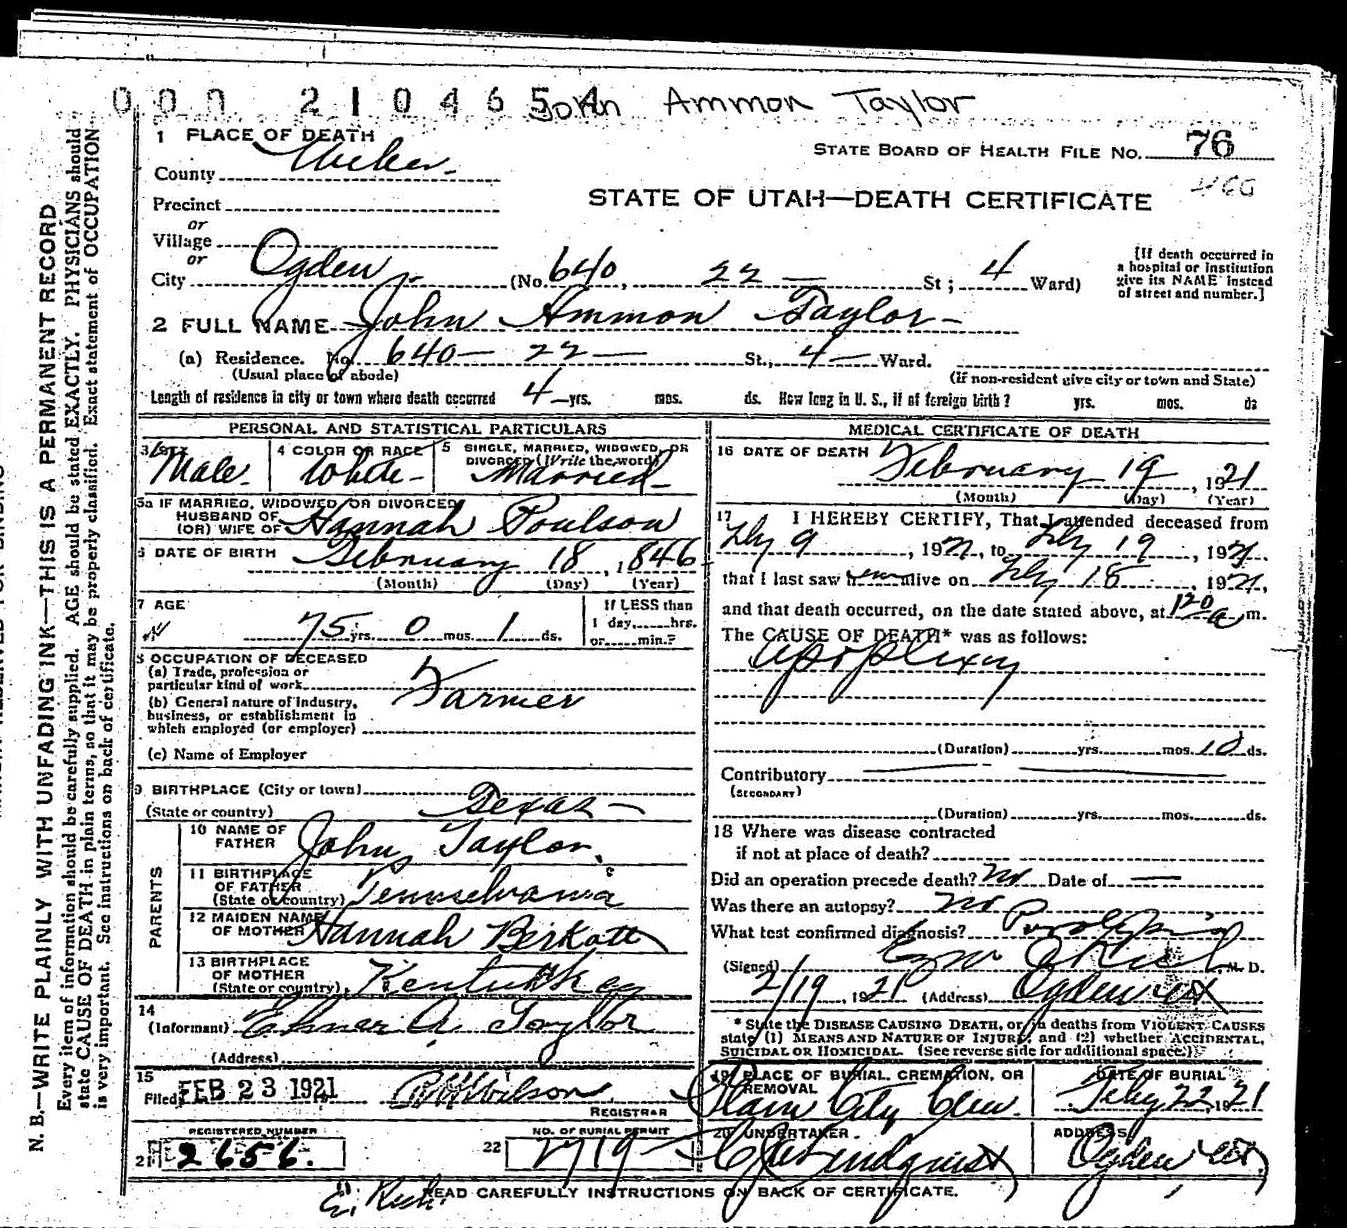 Deathcertificate taylorjohnag death certificate john ammon taylor xflitez Image collections